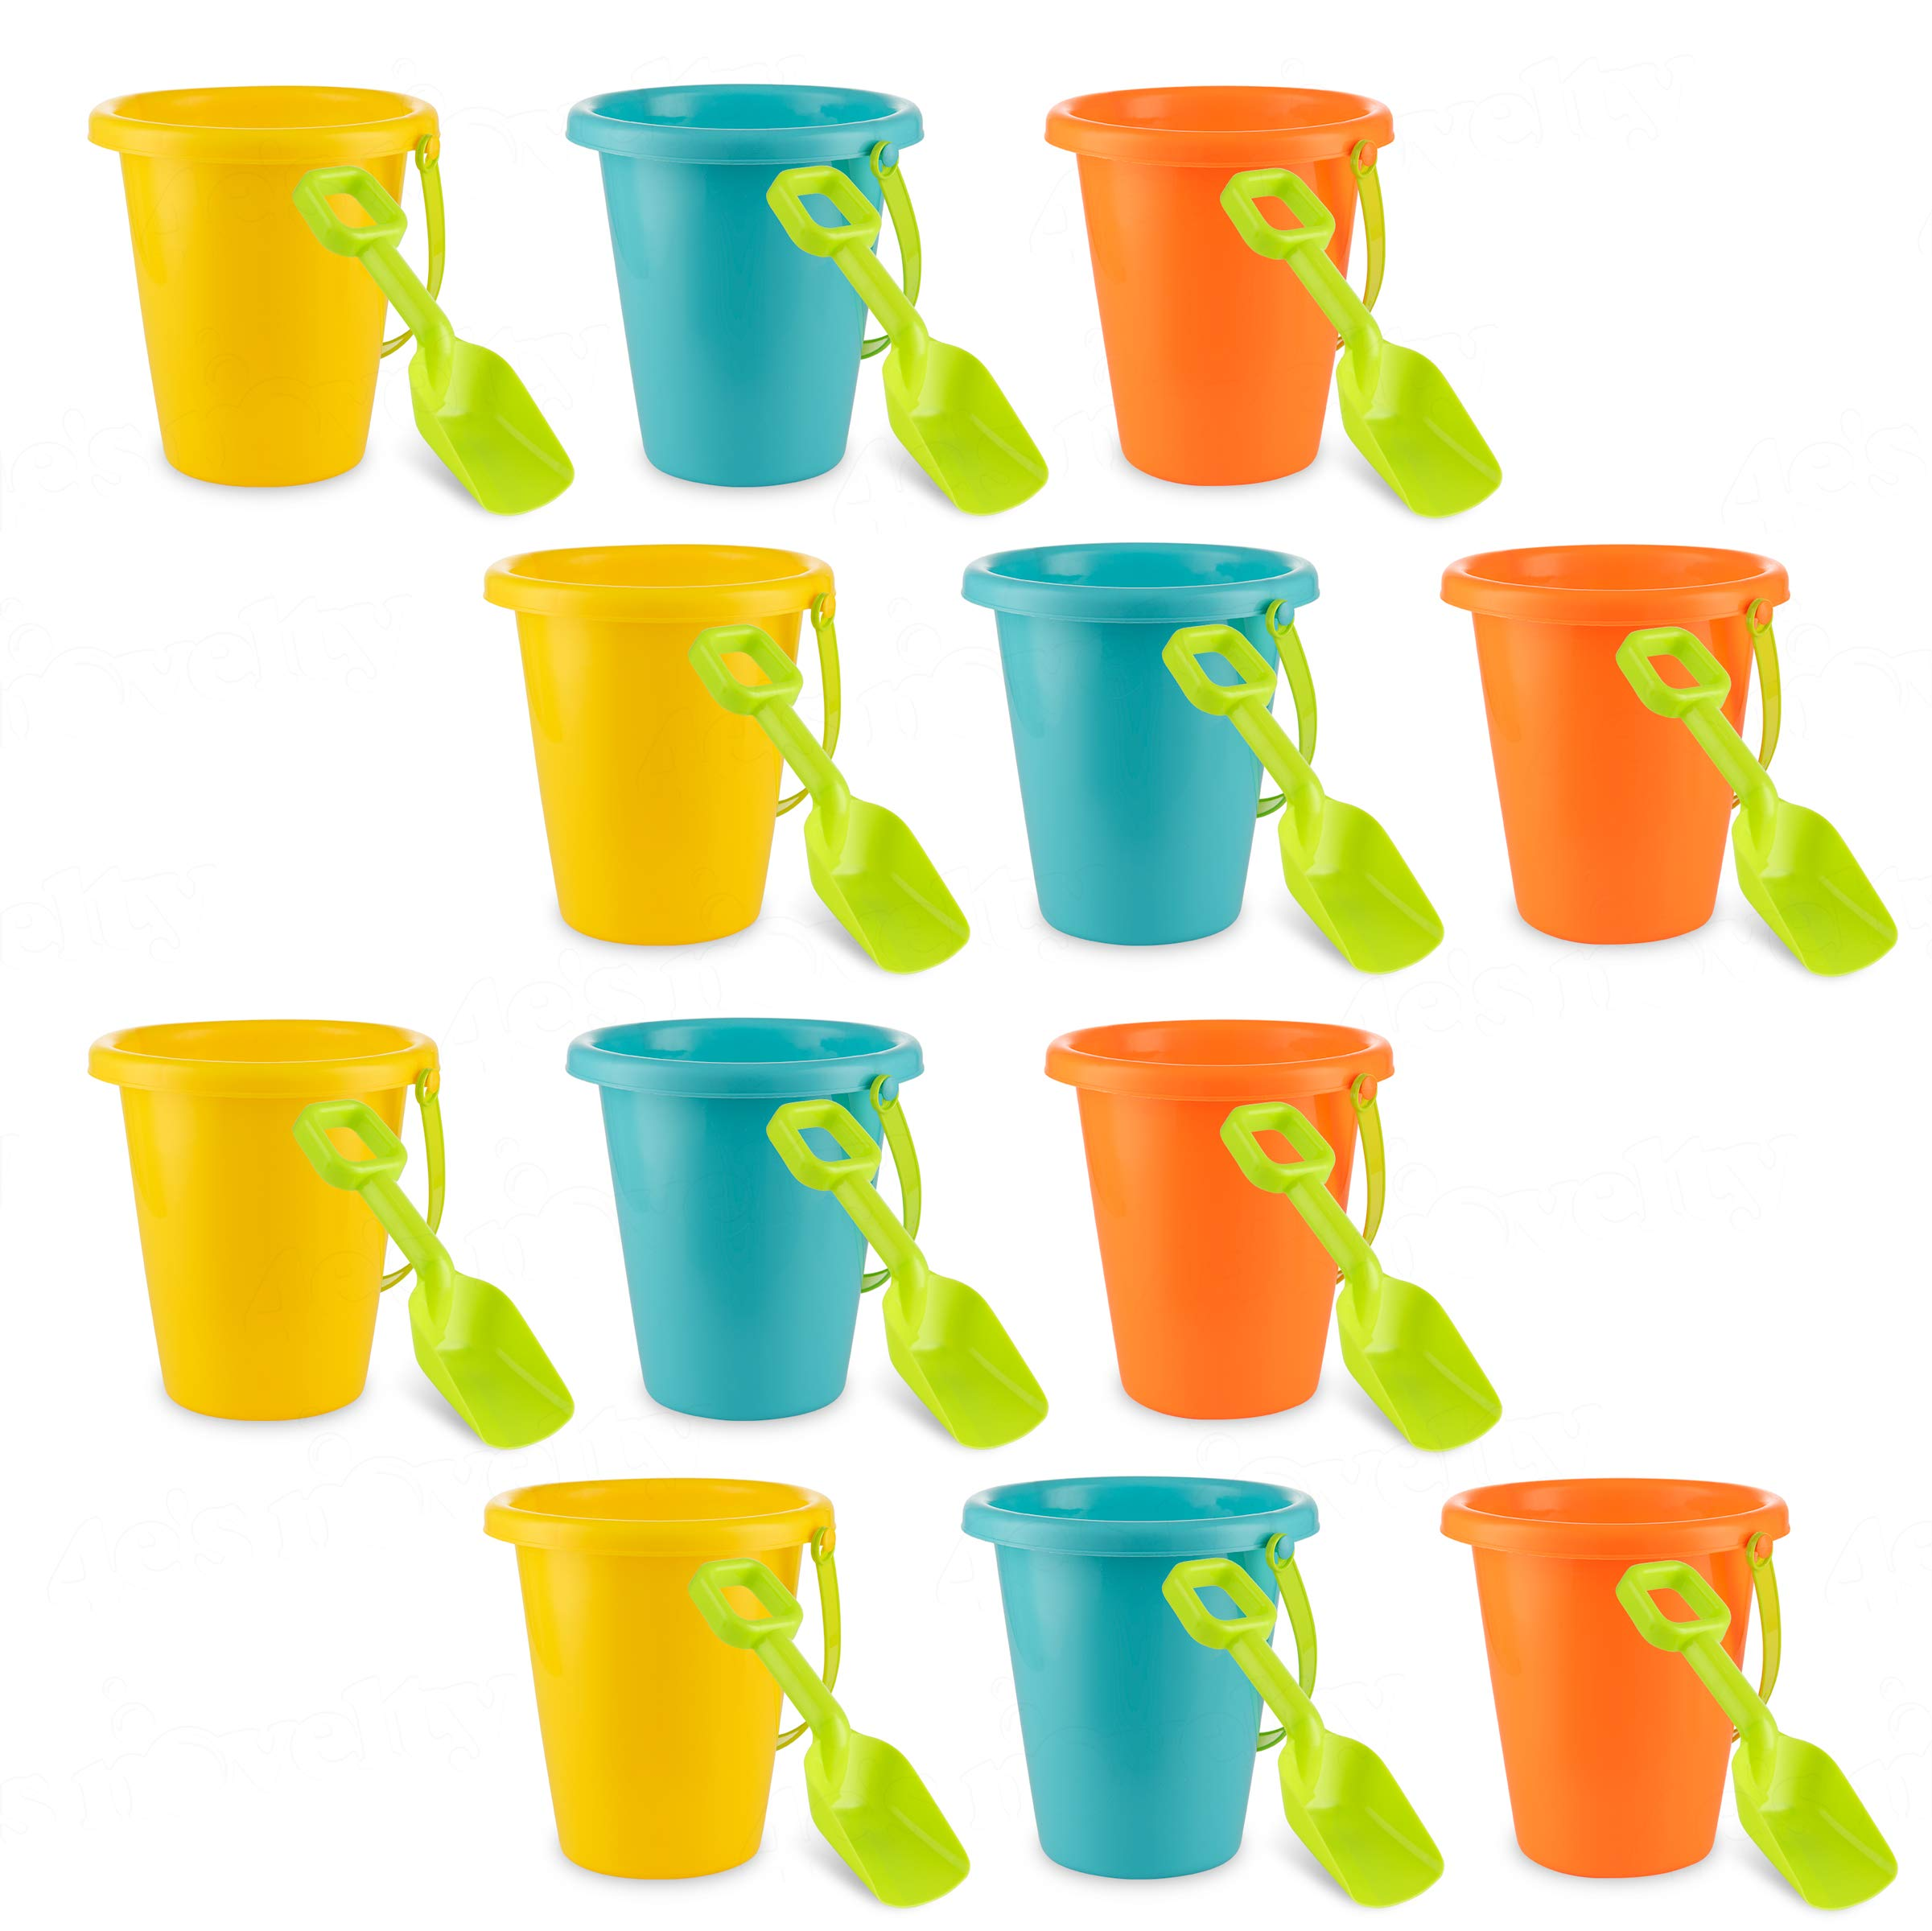 4E's Novelty Pack of 12 Sand Beach Pails and Shovels, Plastic Buckets 6.5 inches, Great Summer Party Accessory, Pool Fun Activity for Kids Boys and Girls, 3 Bright Colors Yellow Blue & Orange by 4E's Novelty